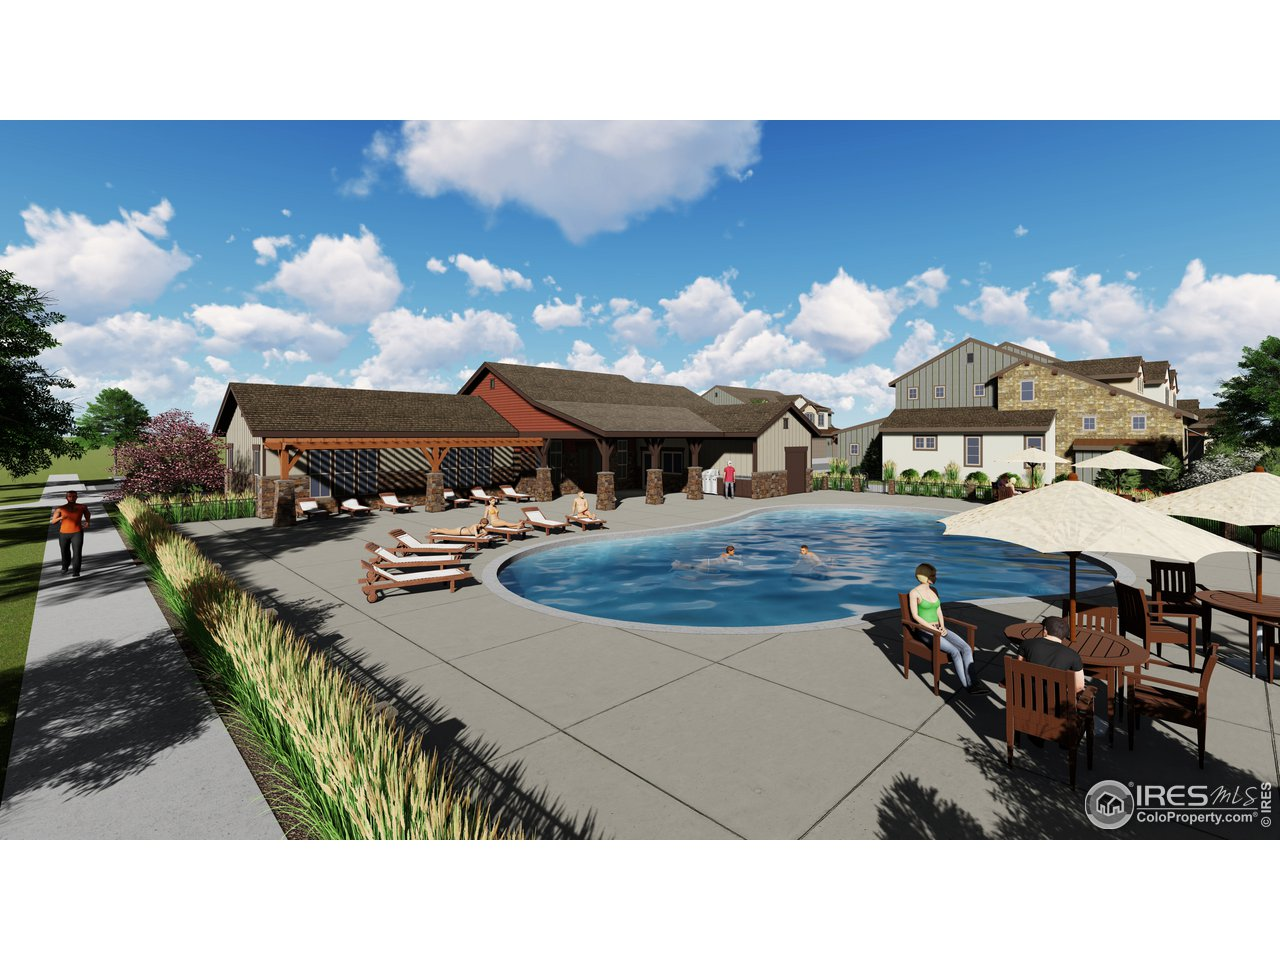 NEW Clubhouse opening summer 2021 w/ hot tubs, rec space, and gym area! Steps from your new home!